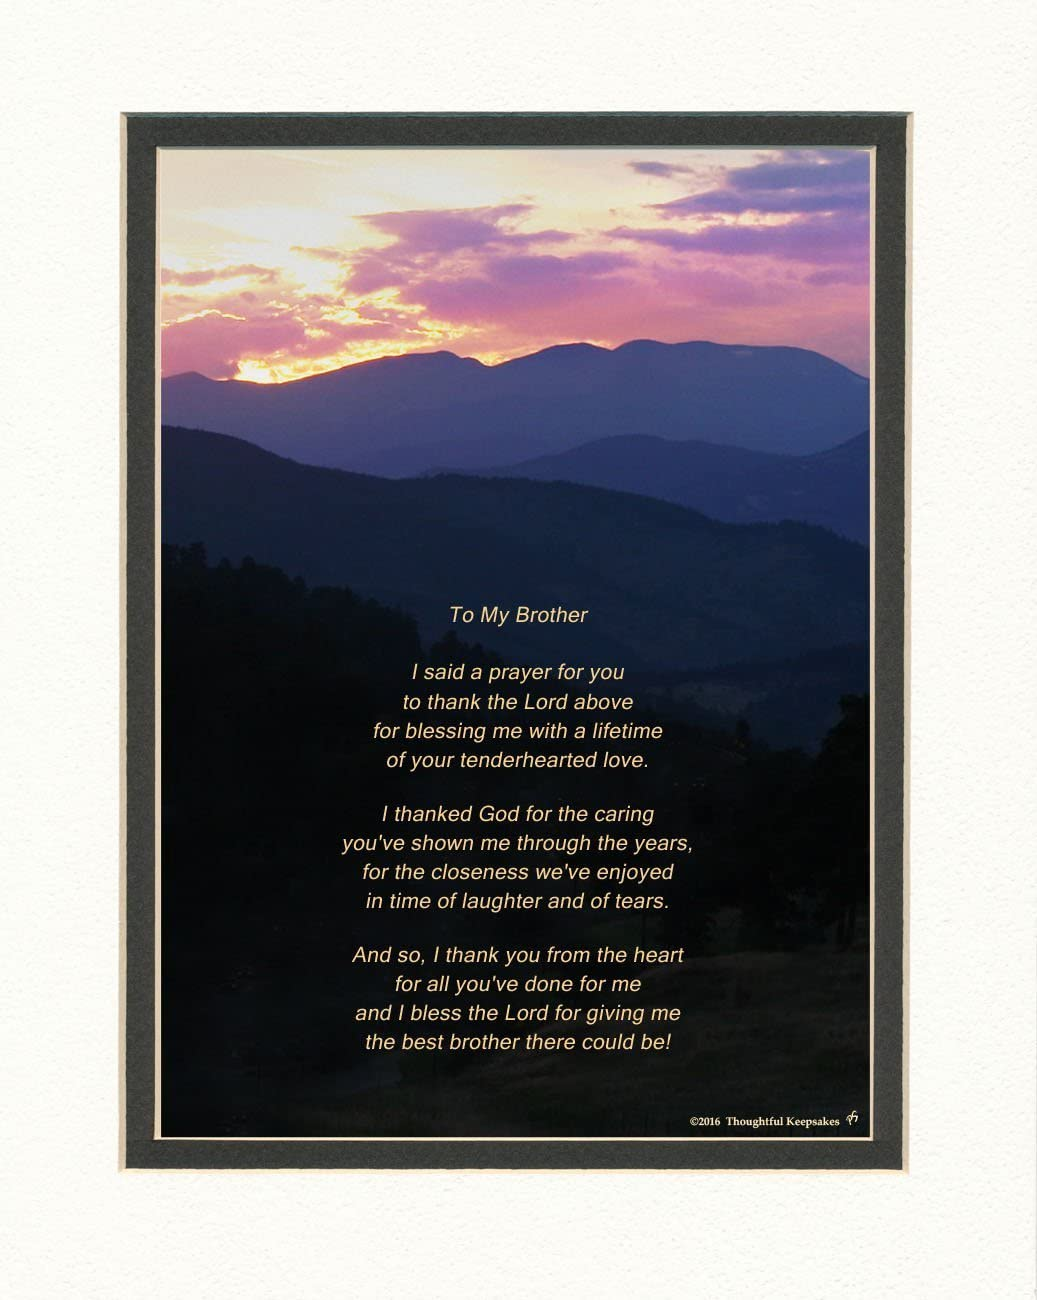 """Brother Gift with """"Thank You Prayer for Best Brother"""" Poem. Mts Sunset Photo, 8x10 Double Matted. Special Unique Birthday, Christmas Gift for Brother"""